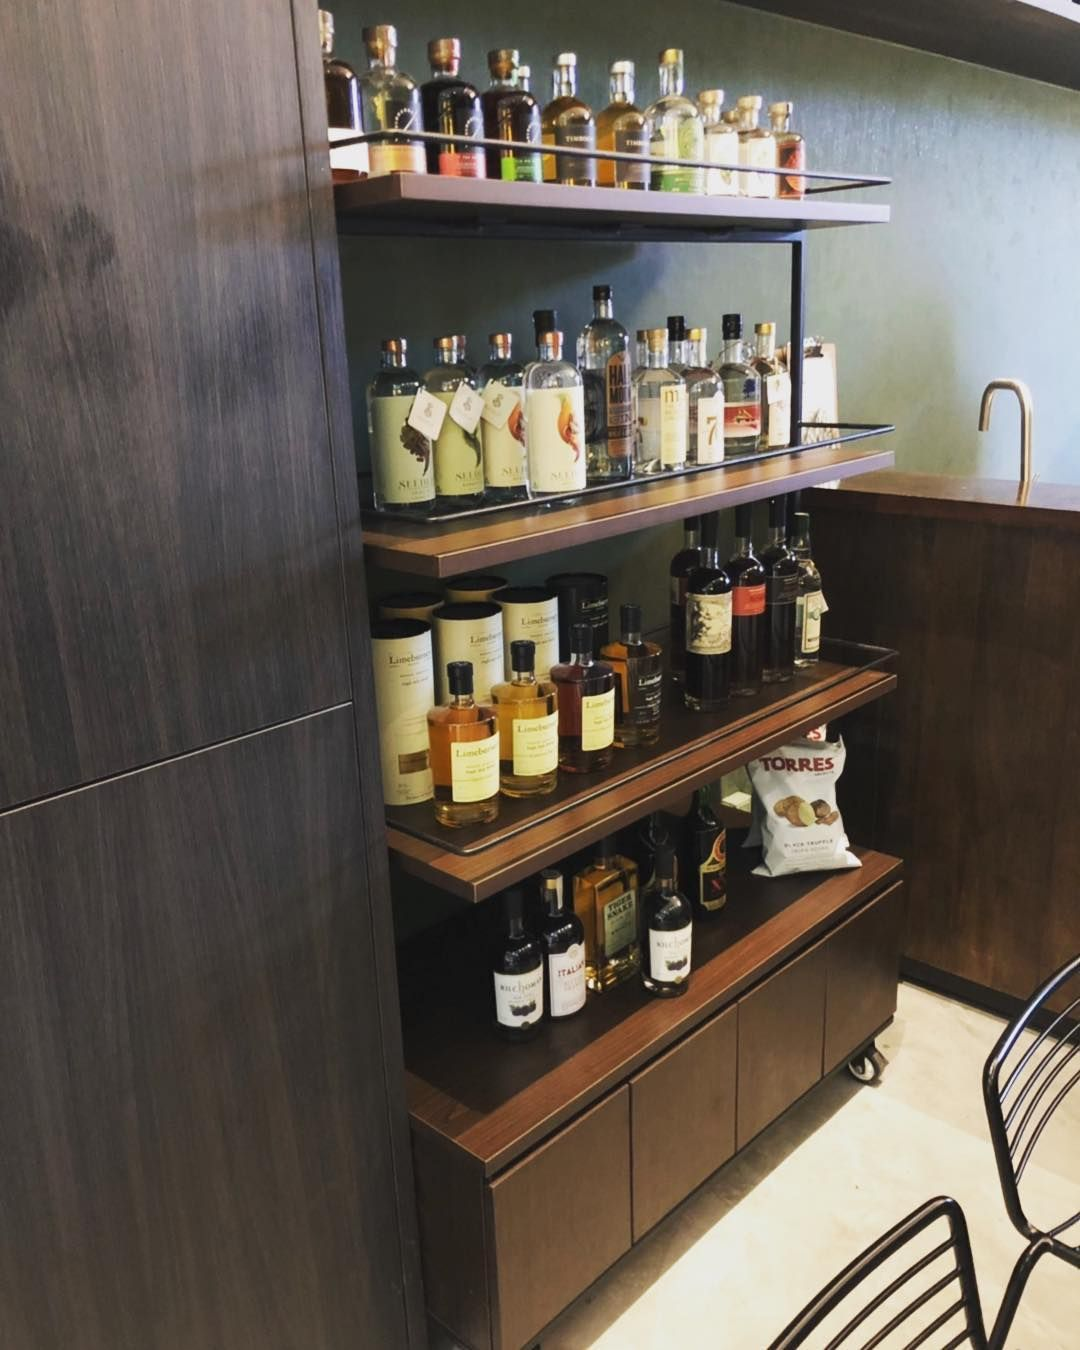 Mobile Display Stand For Liquor Bottles Complete With A Storage